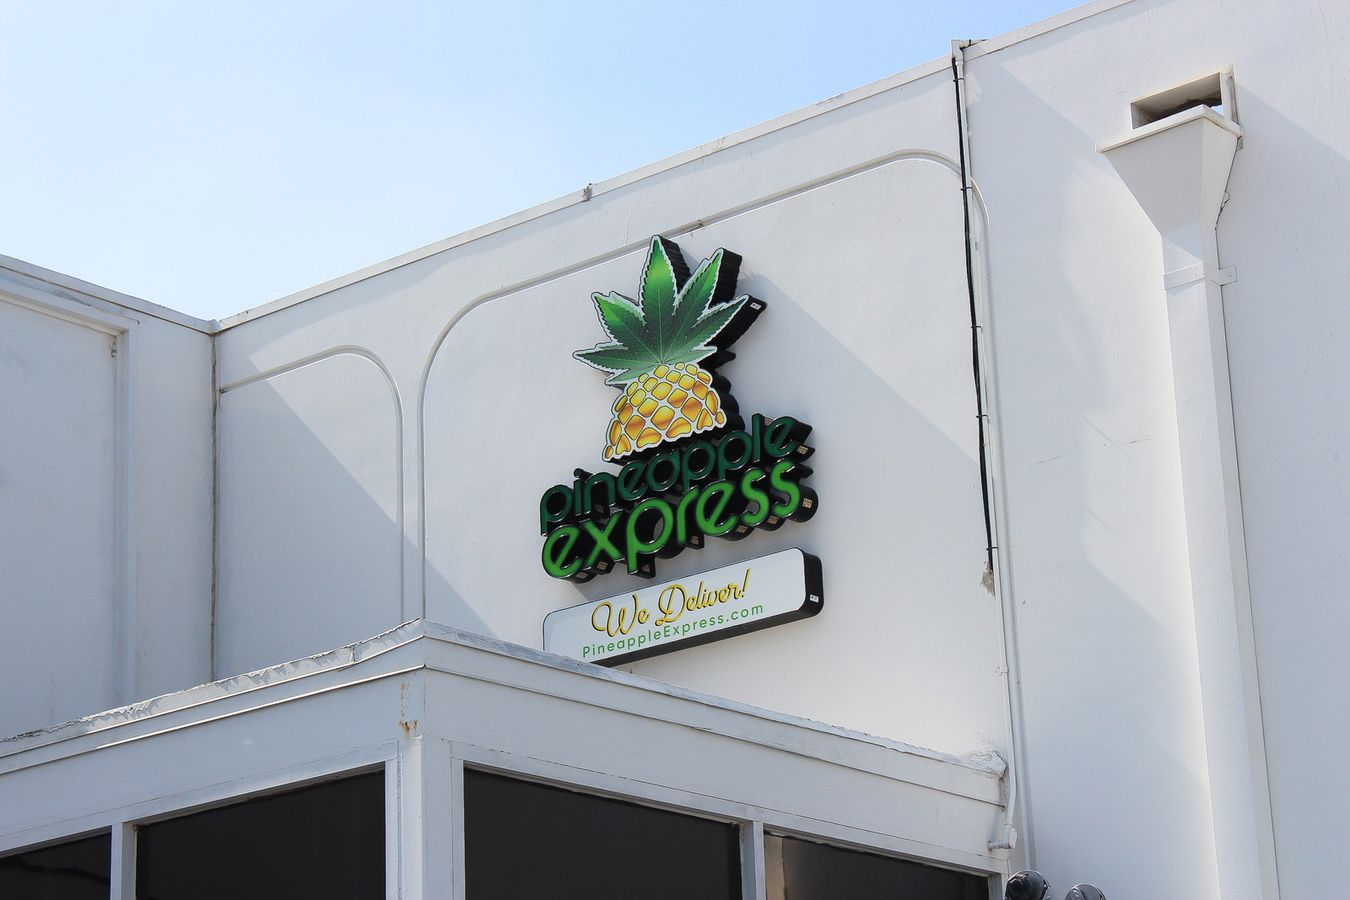 Pineapple Express lightbox logo sign in a pineapple shape made of aluminum and acrylic for business branding and visibility